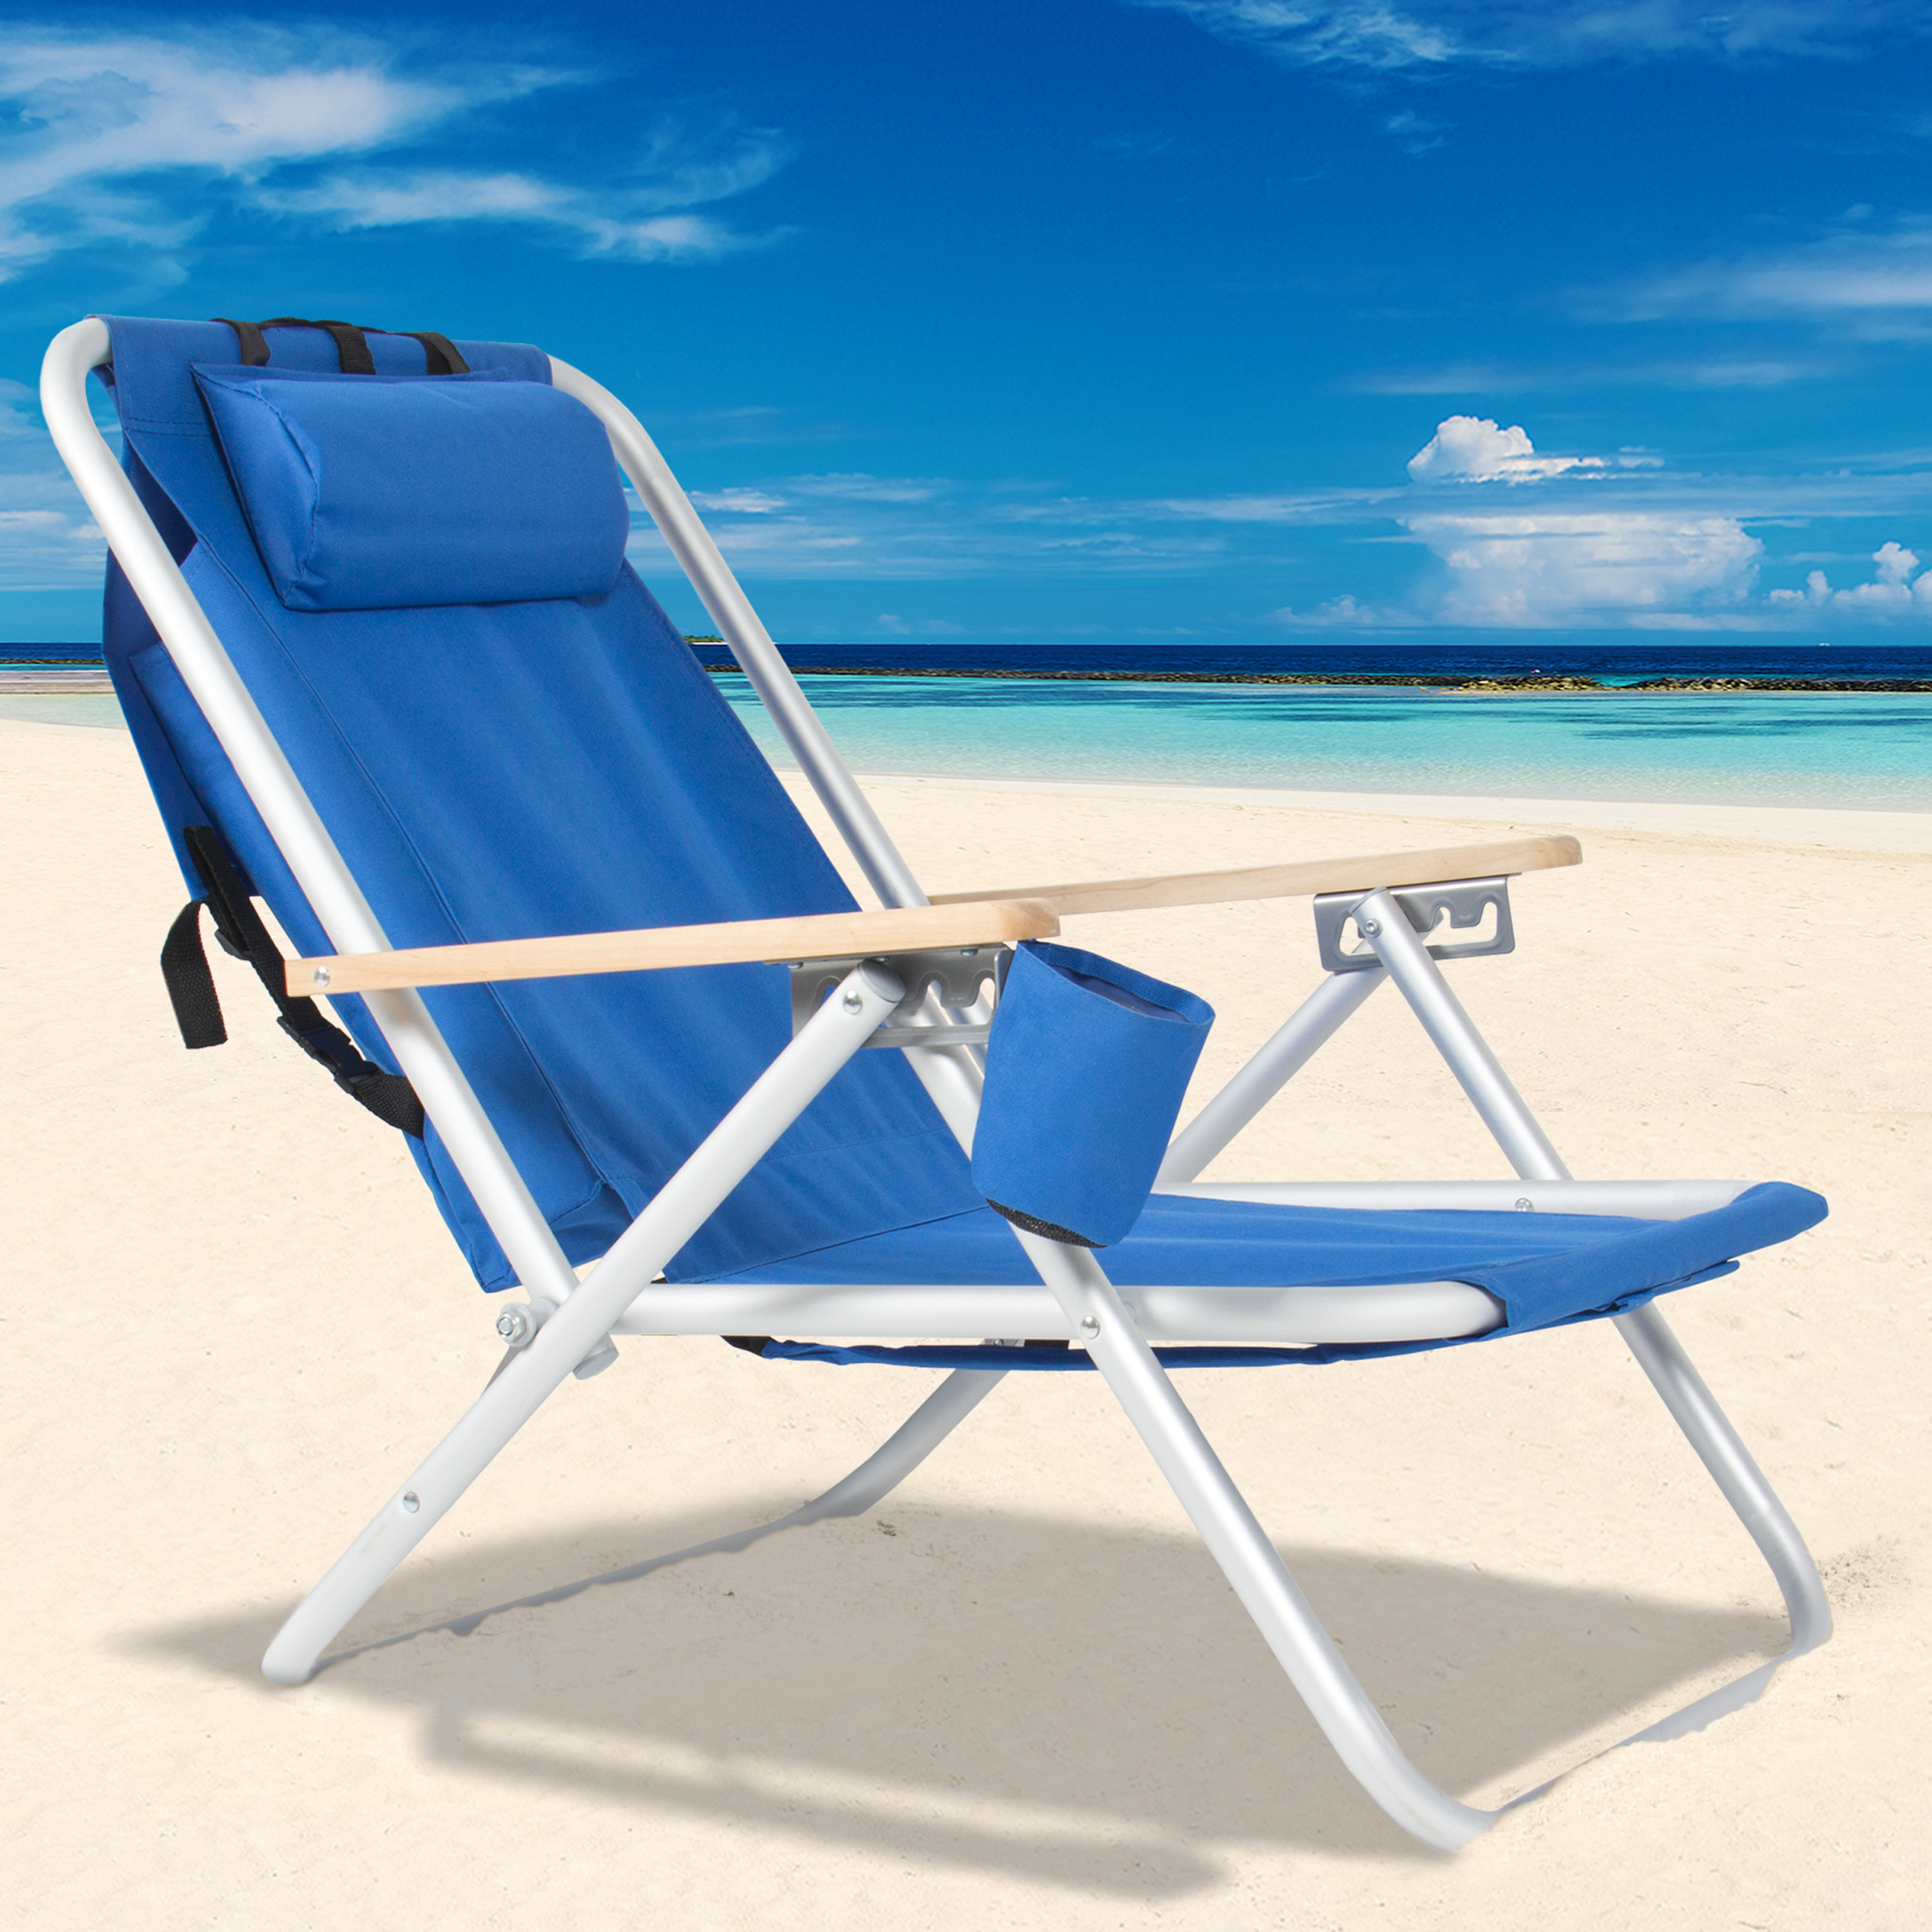 folding low chair uisrviugrcbkhbjcnduy bums products lucky sling beach profile chairs